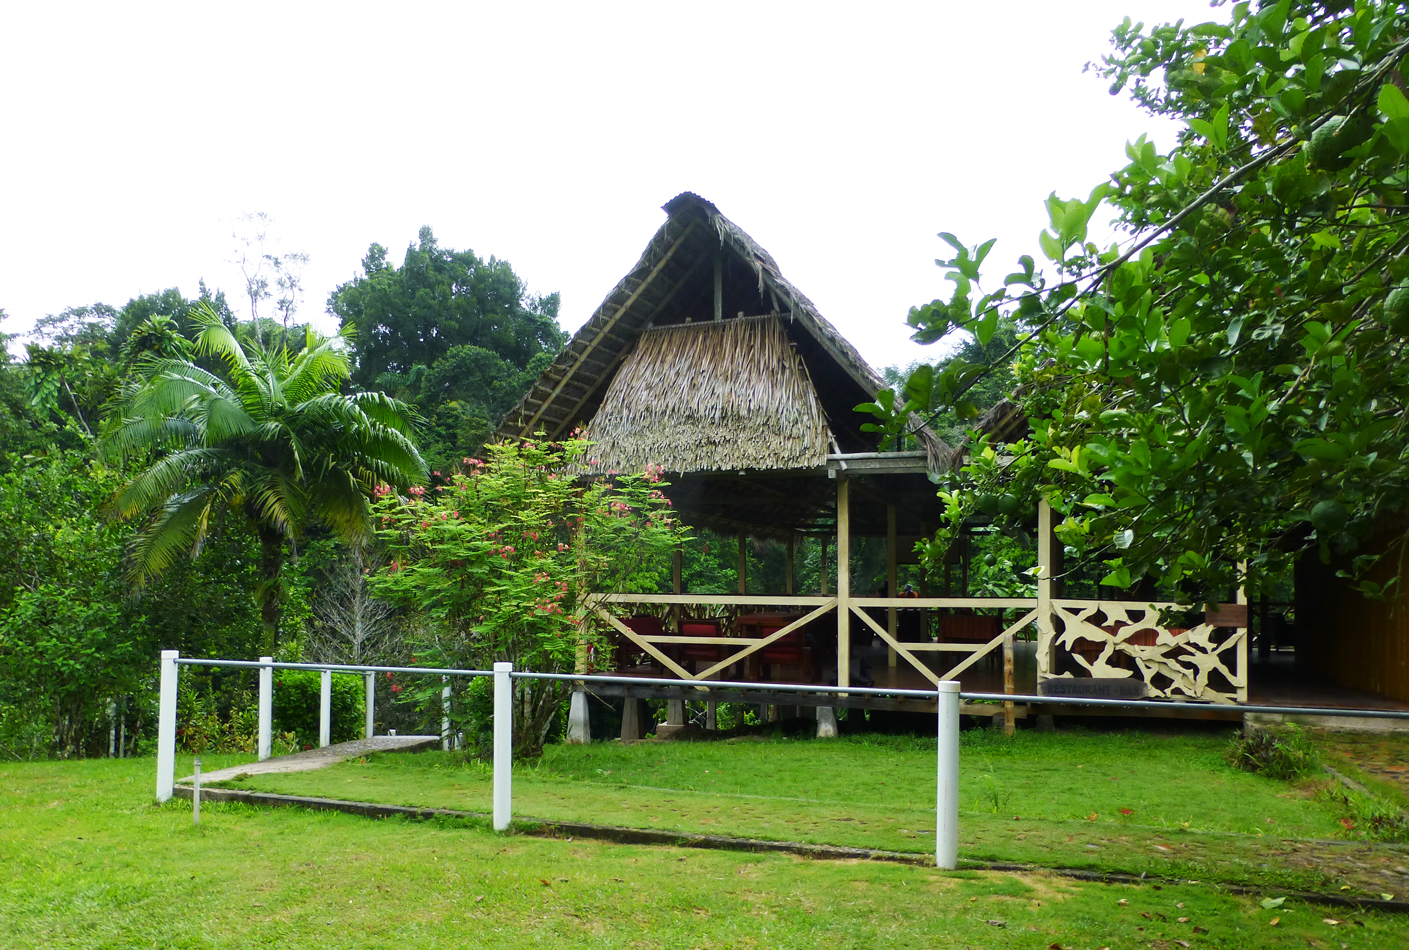 A view of the lodge